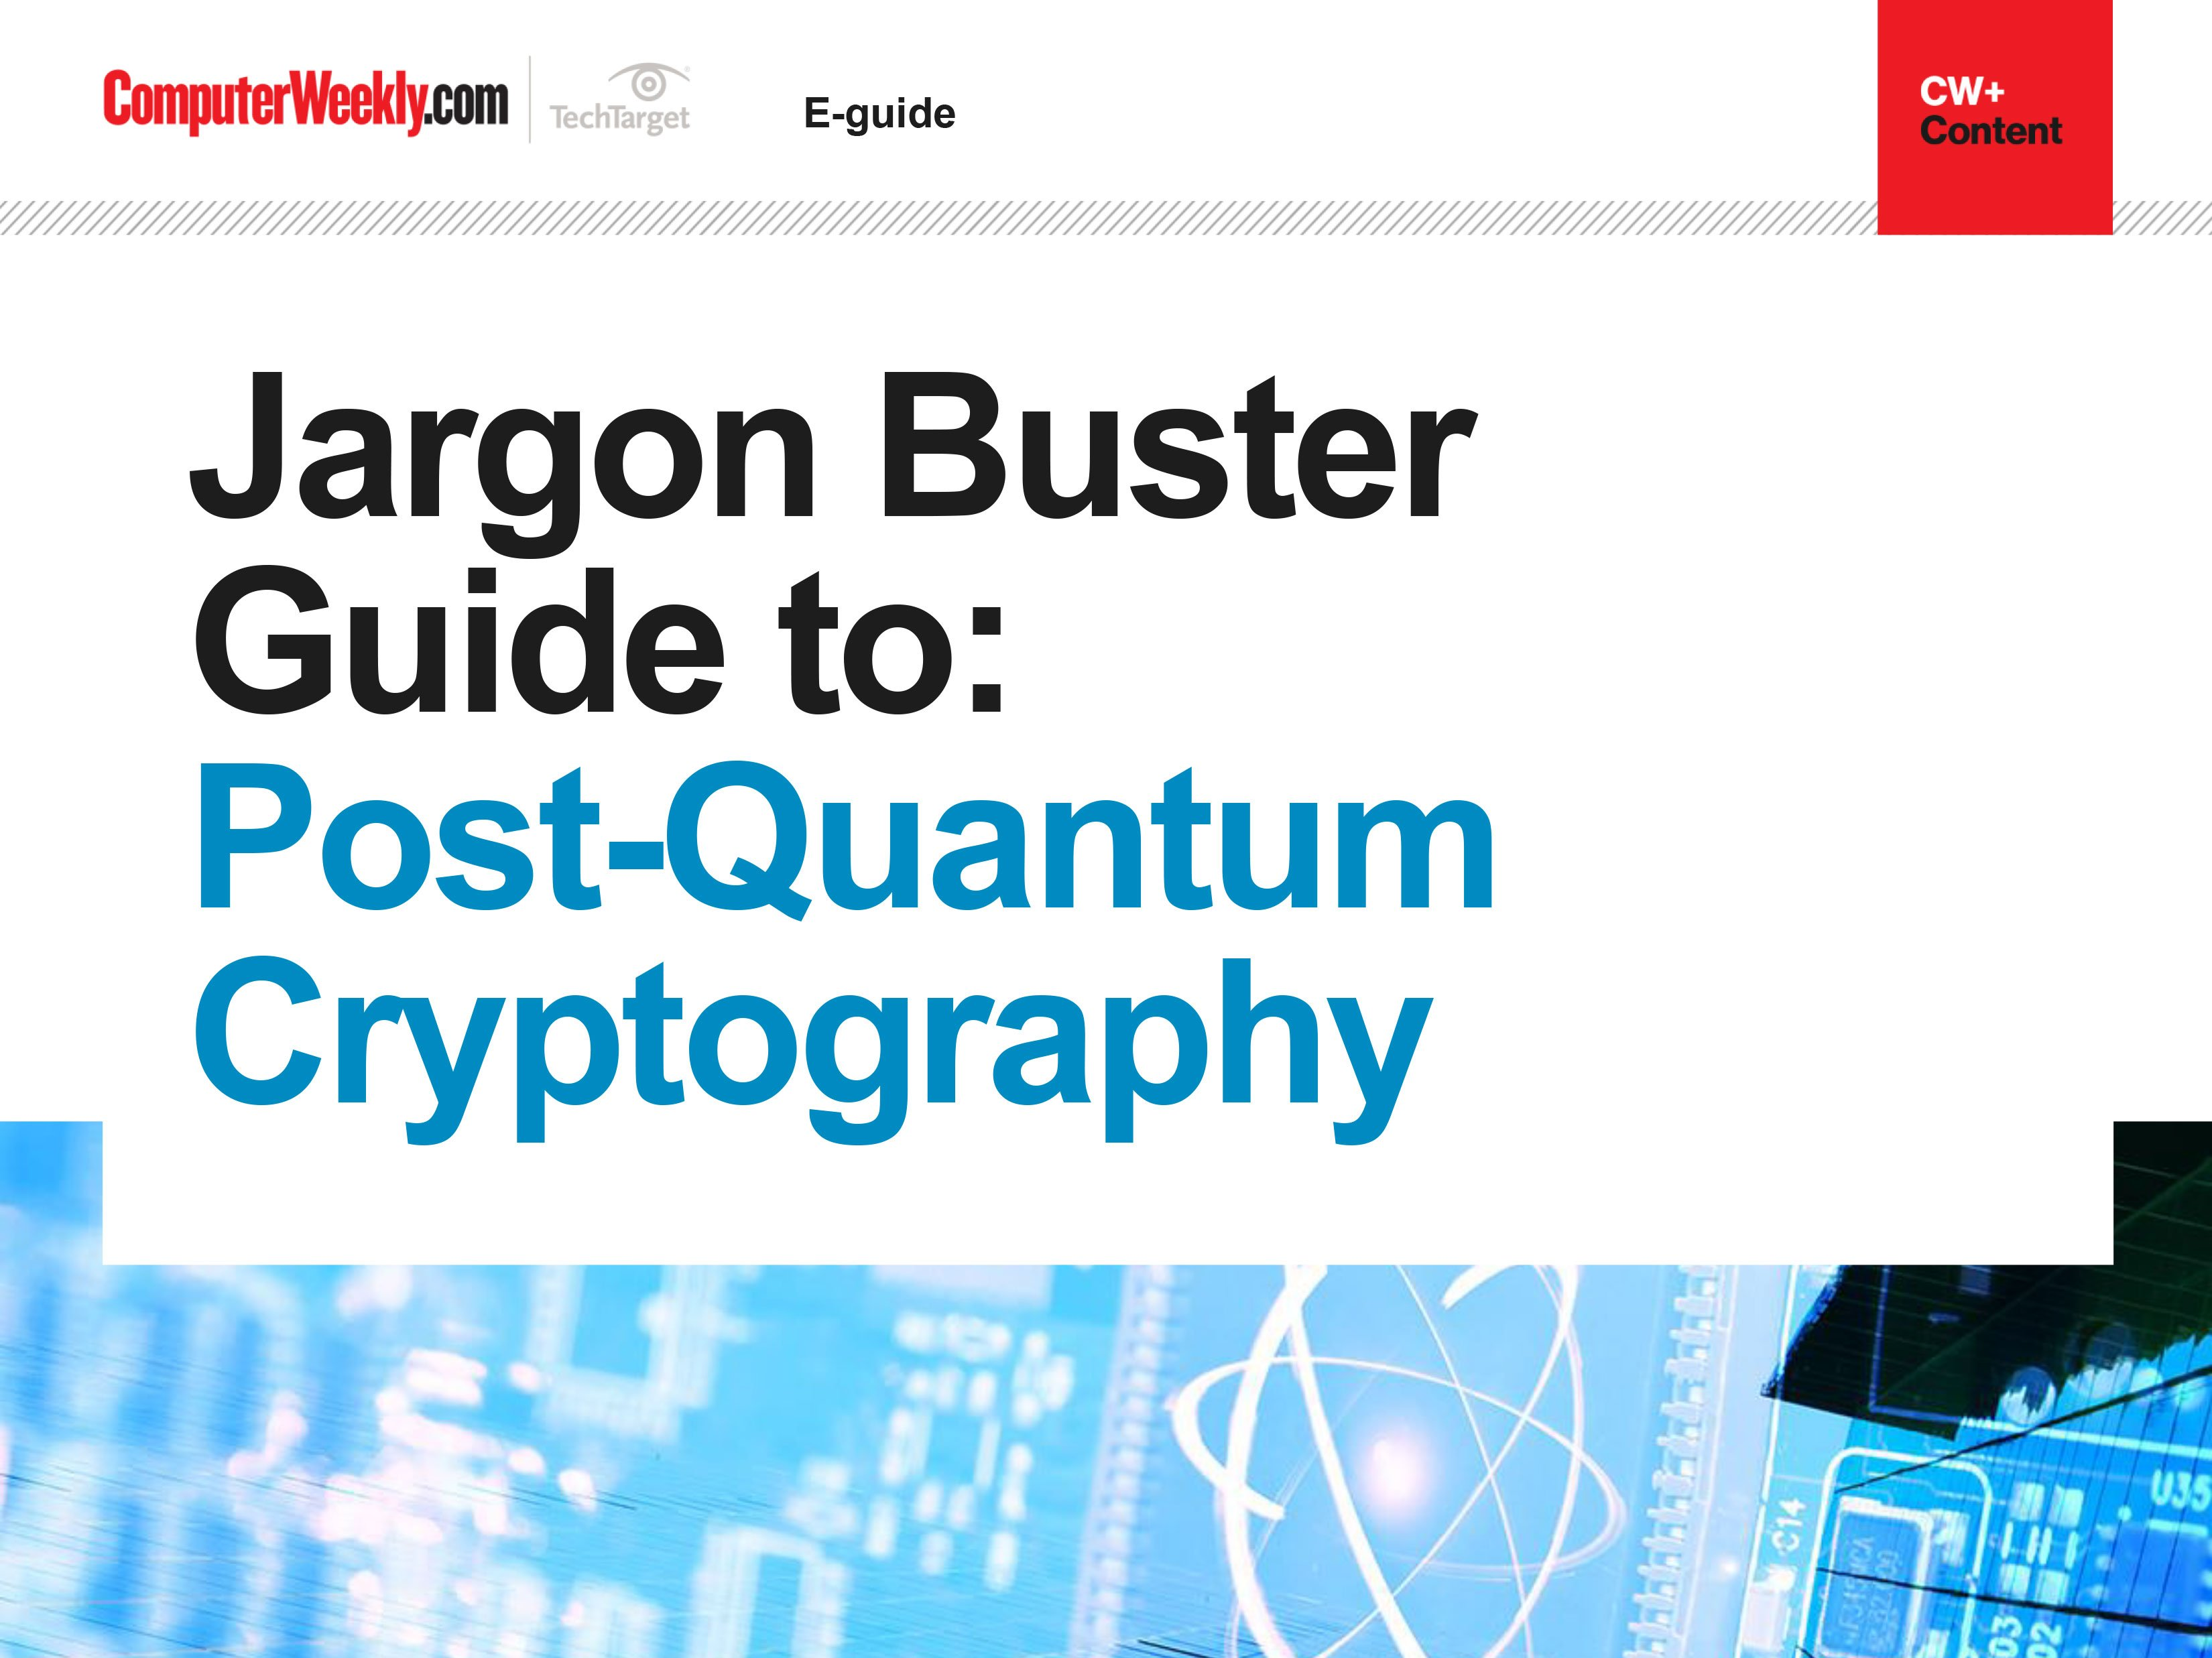 Jargon Buster Guide to Post Quantum Cryptography